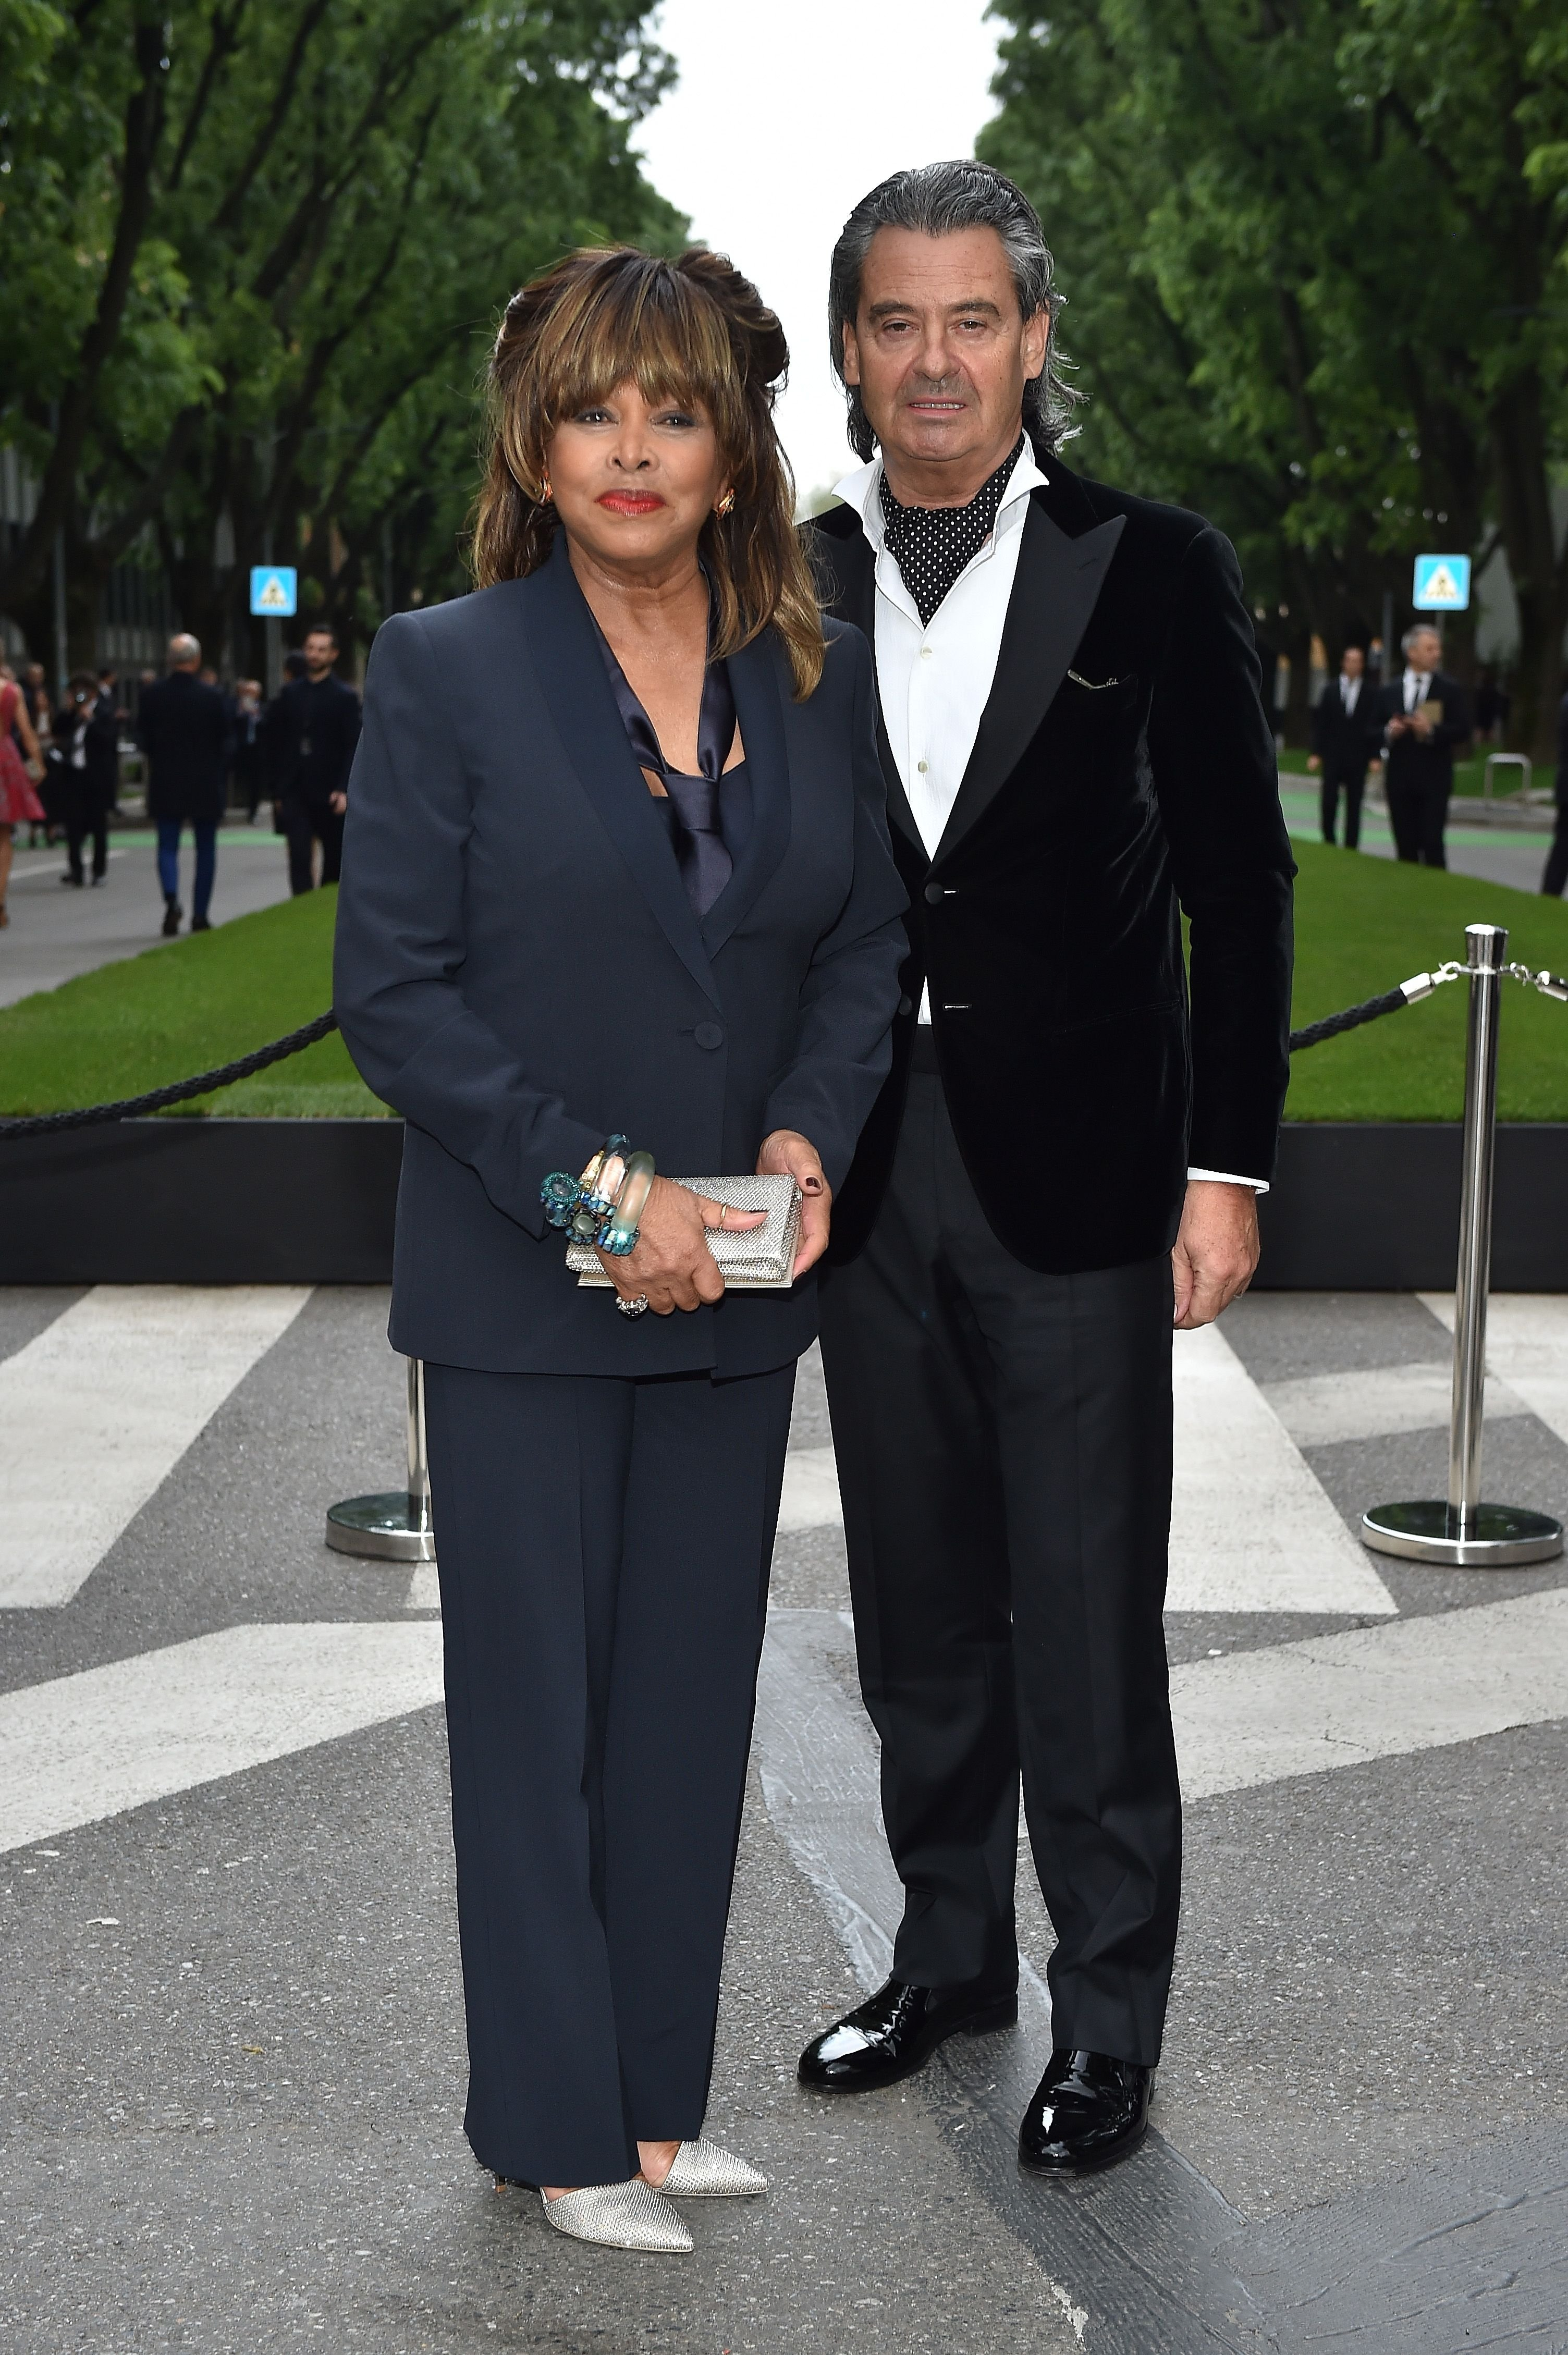 Tina Turner and Erwin Bach at the Giorgio Armani 40th Anniversary Cocktail Reception in 2015 in Milan, Italy | Source: Getty Images